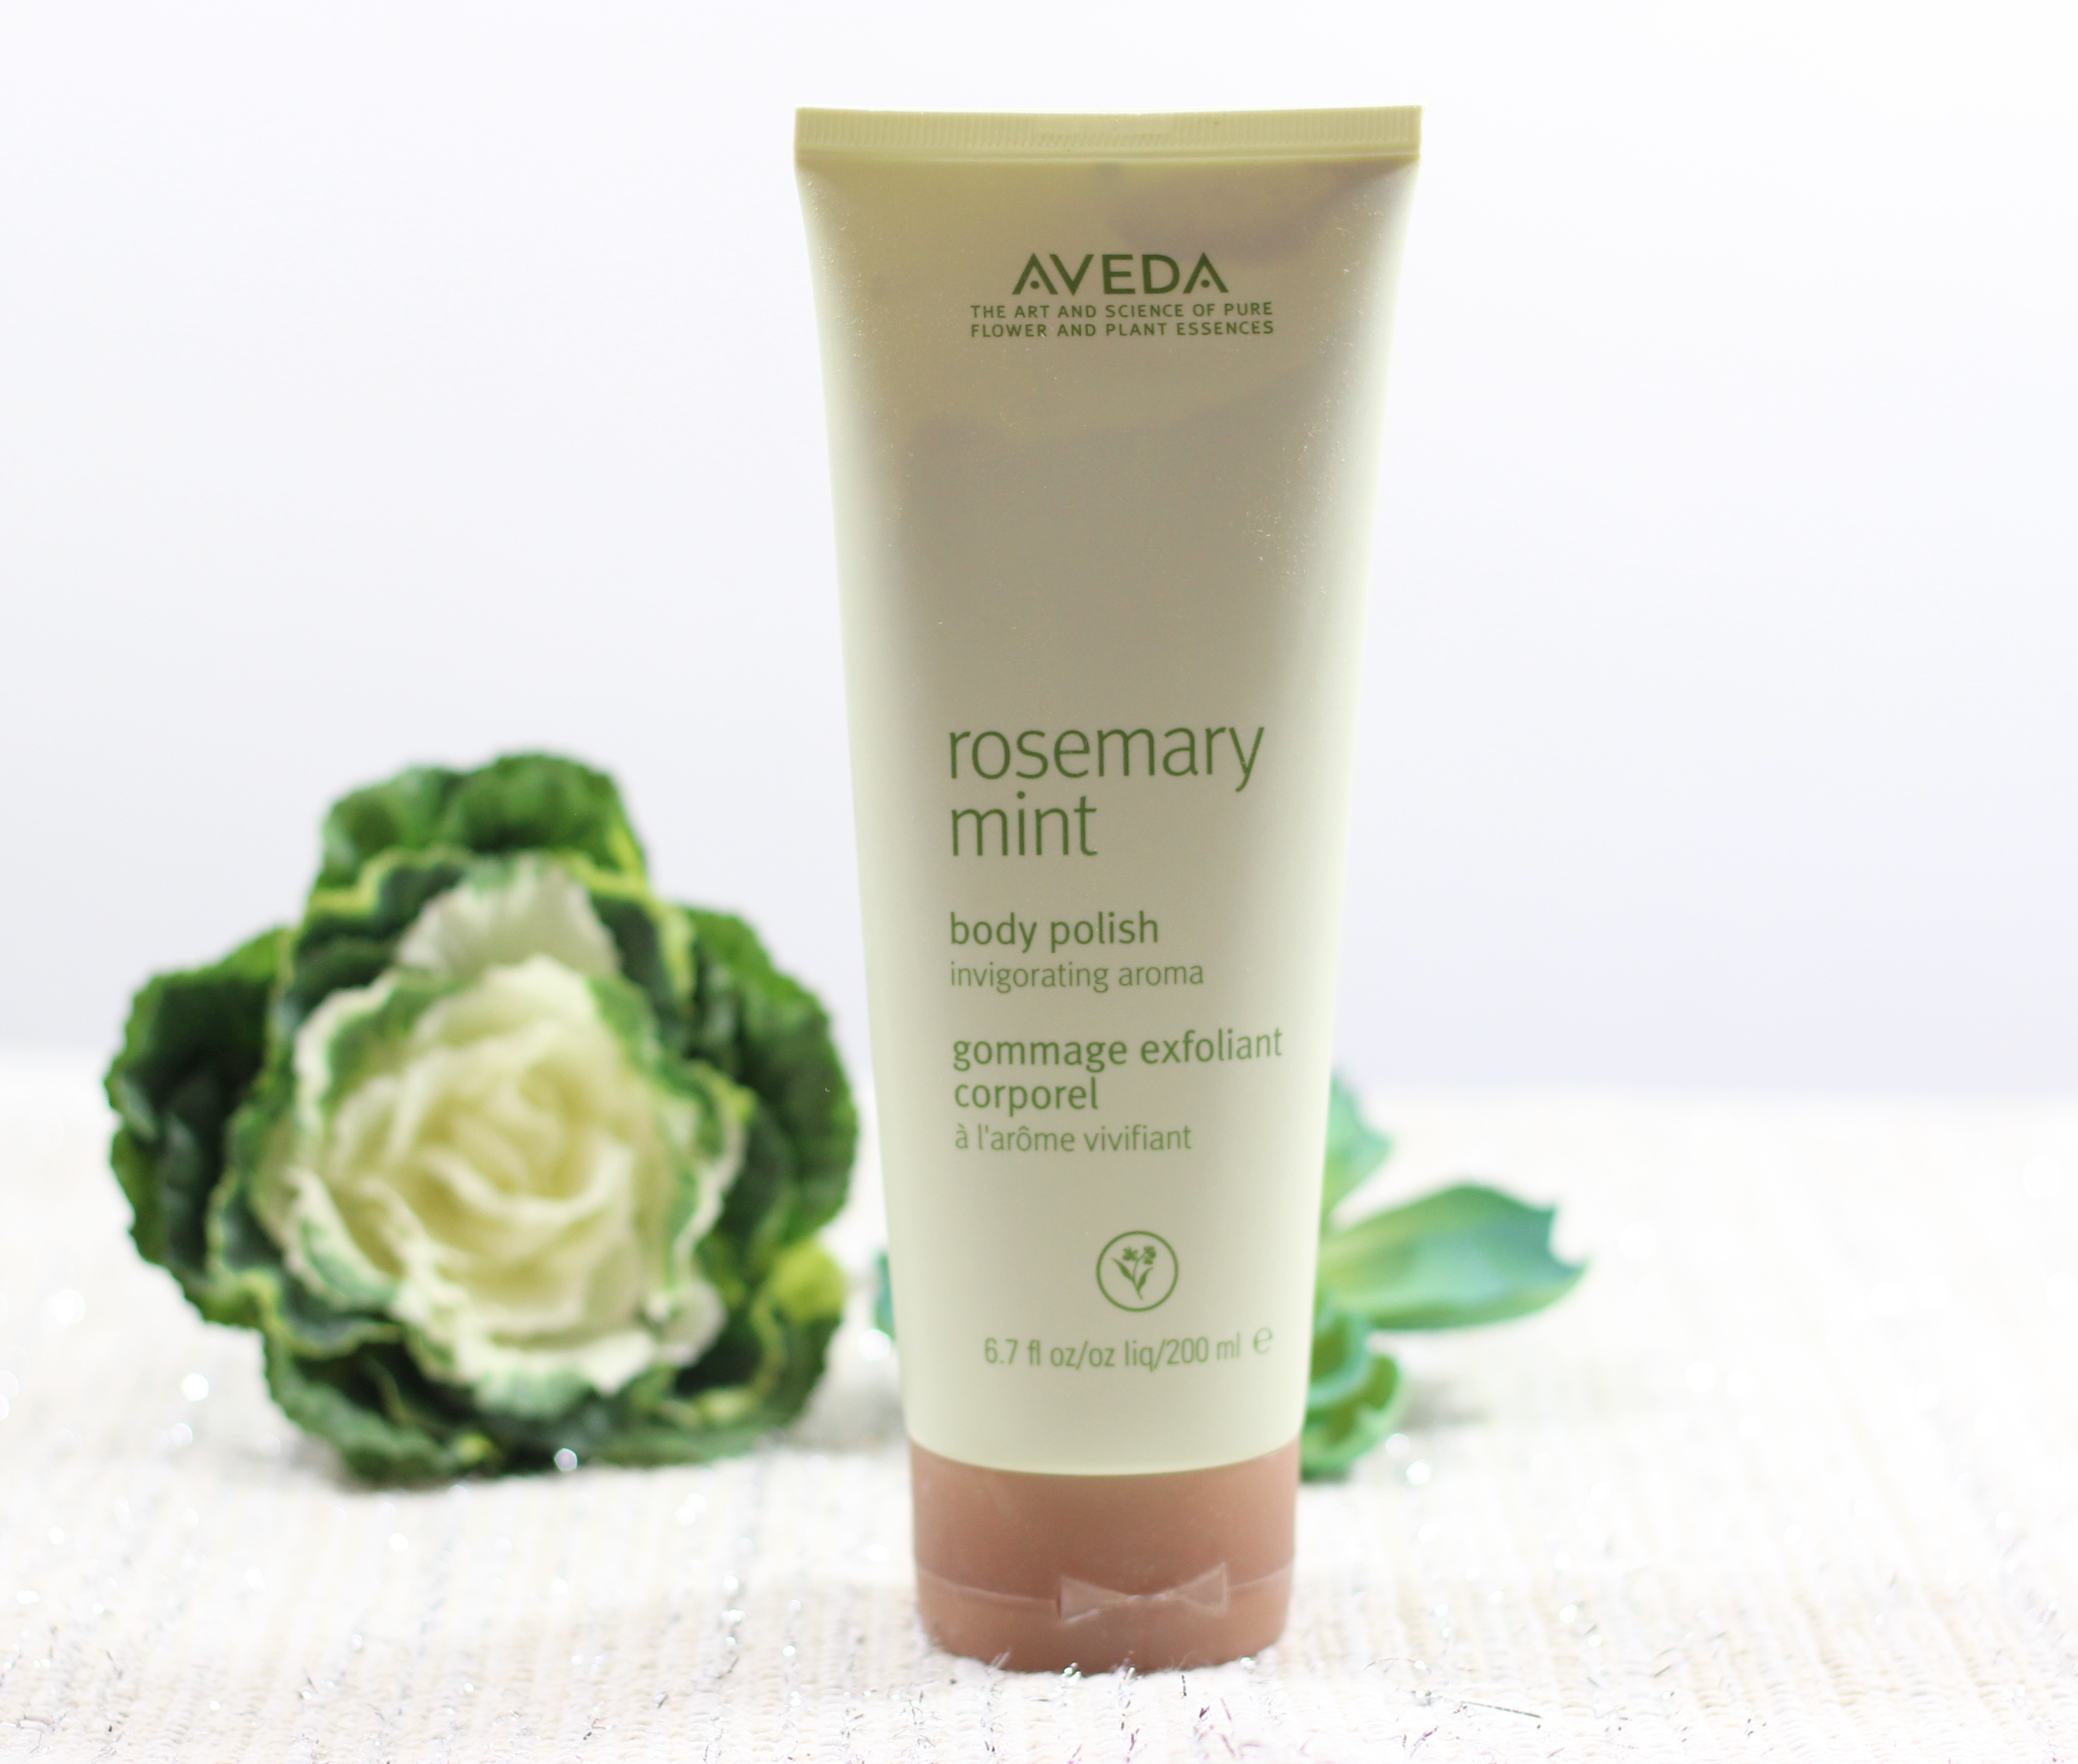 Aveda Rosemary Mint Body Polish